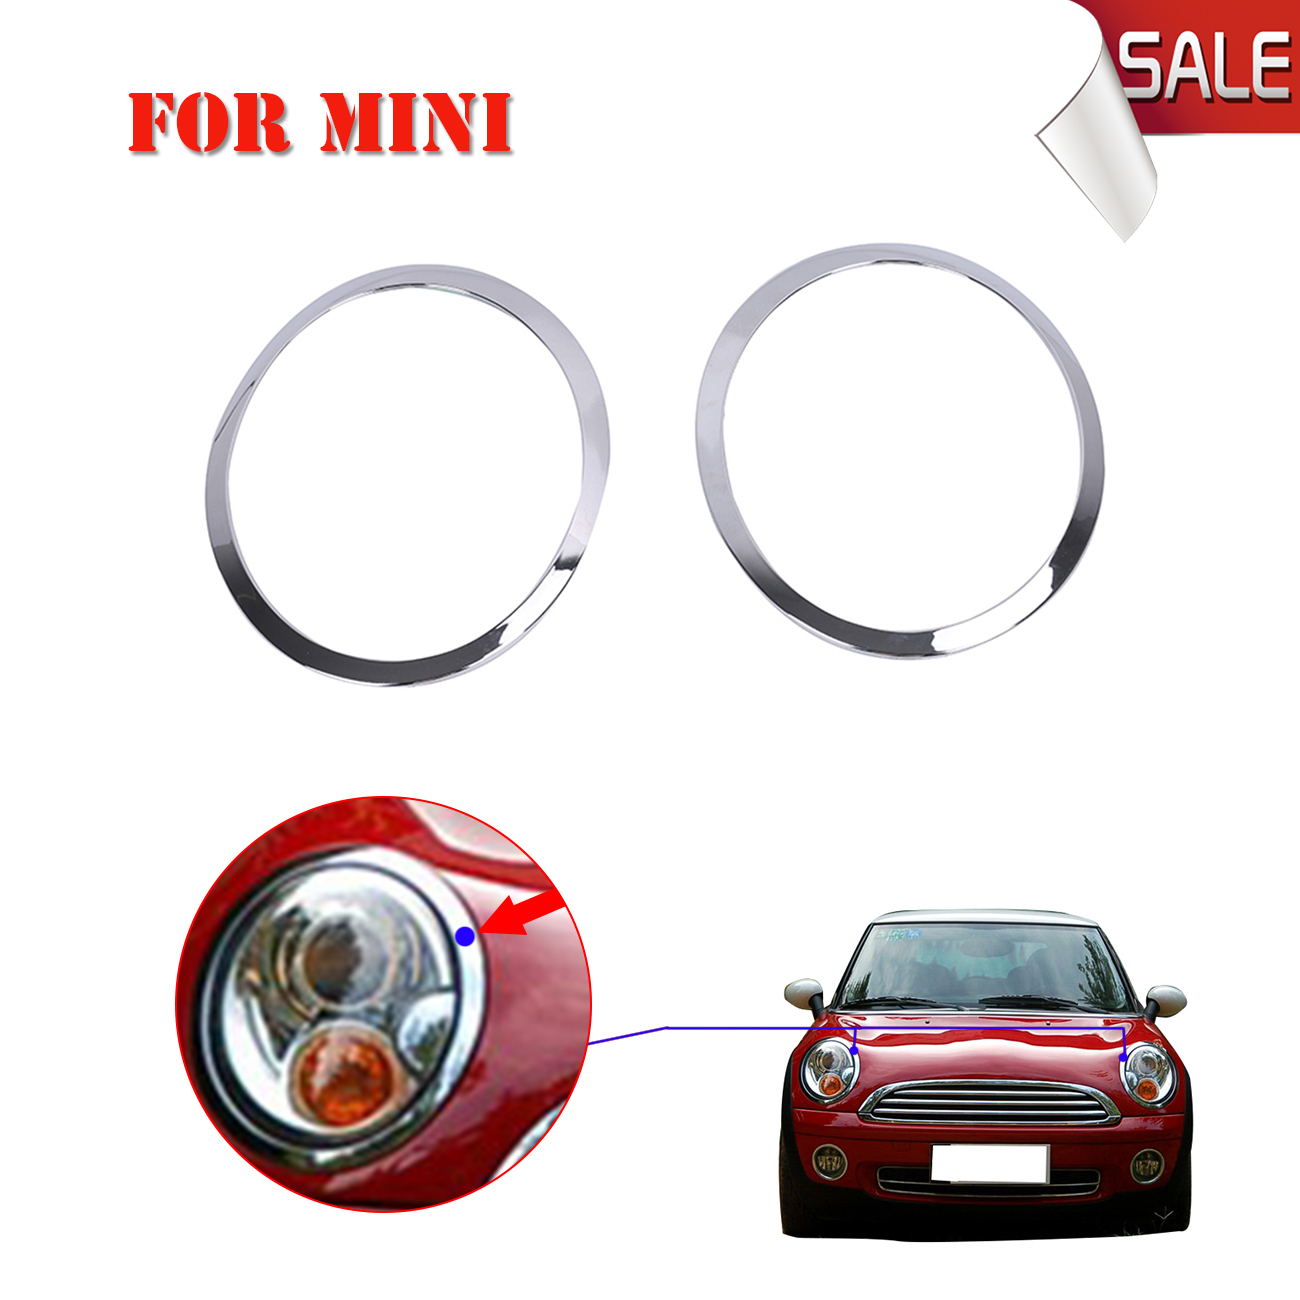 Brand New Abs Car Headlight Trim Ring Chrome Headlamp Cover For Mini Cooper 2007 2017 Replacement 51137149905 906 W144